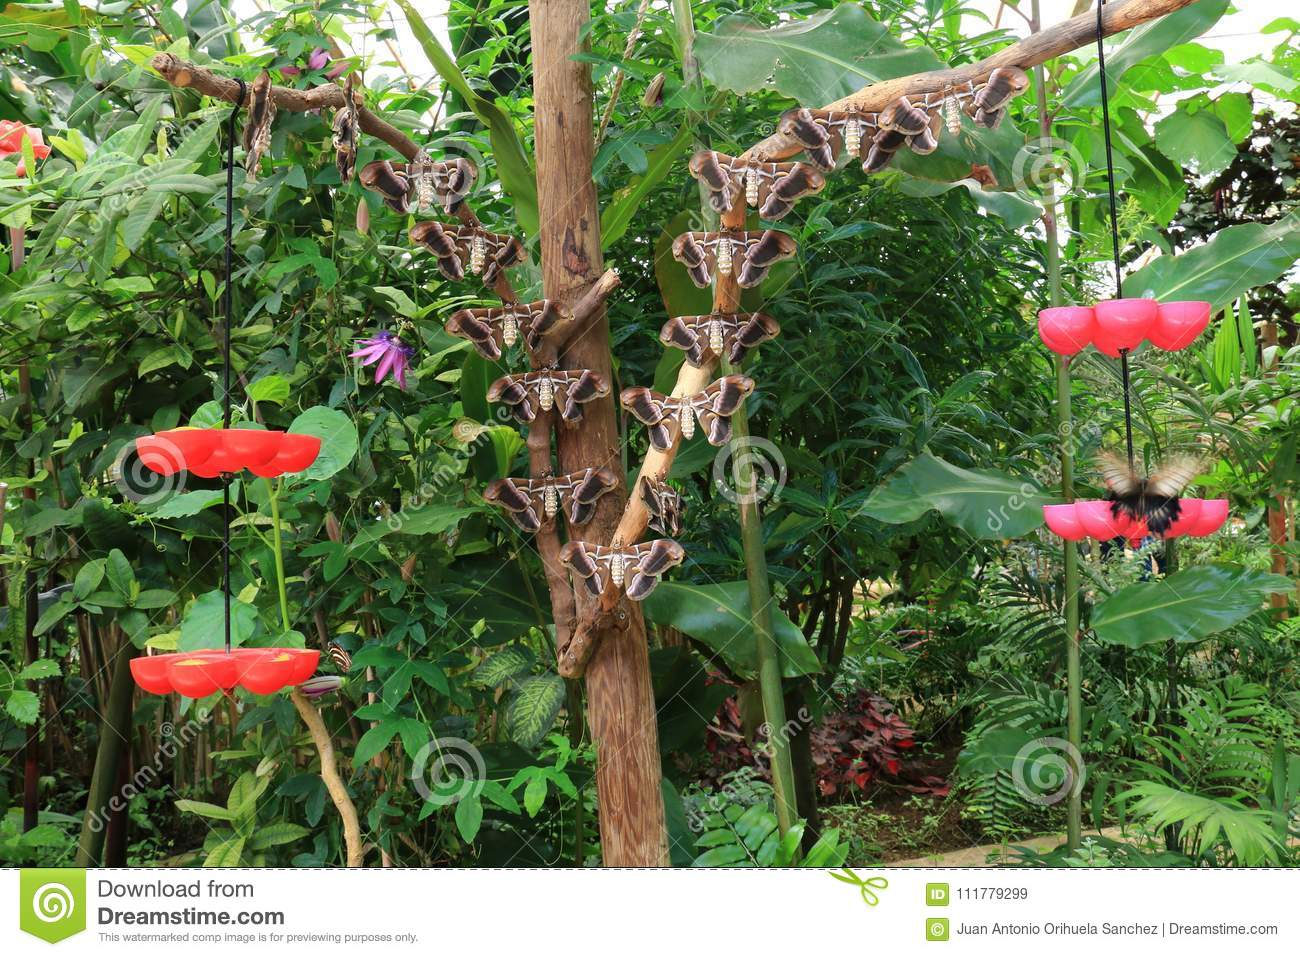 Many butterflies perched on branches